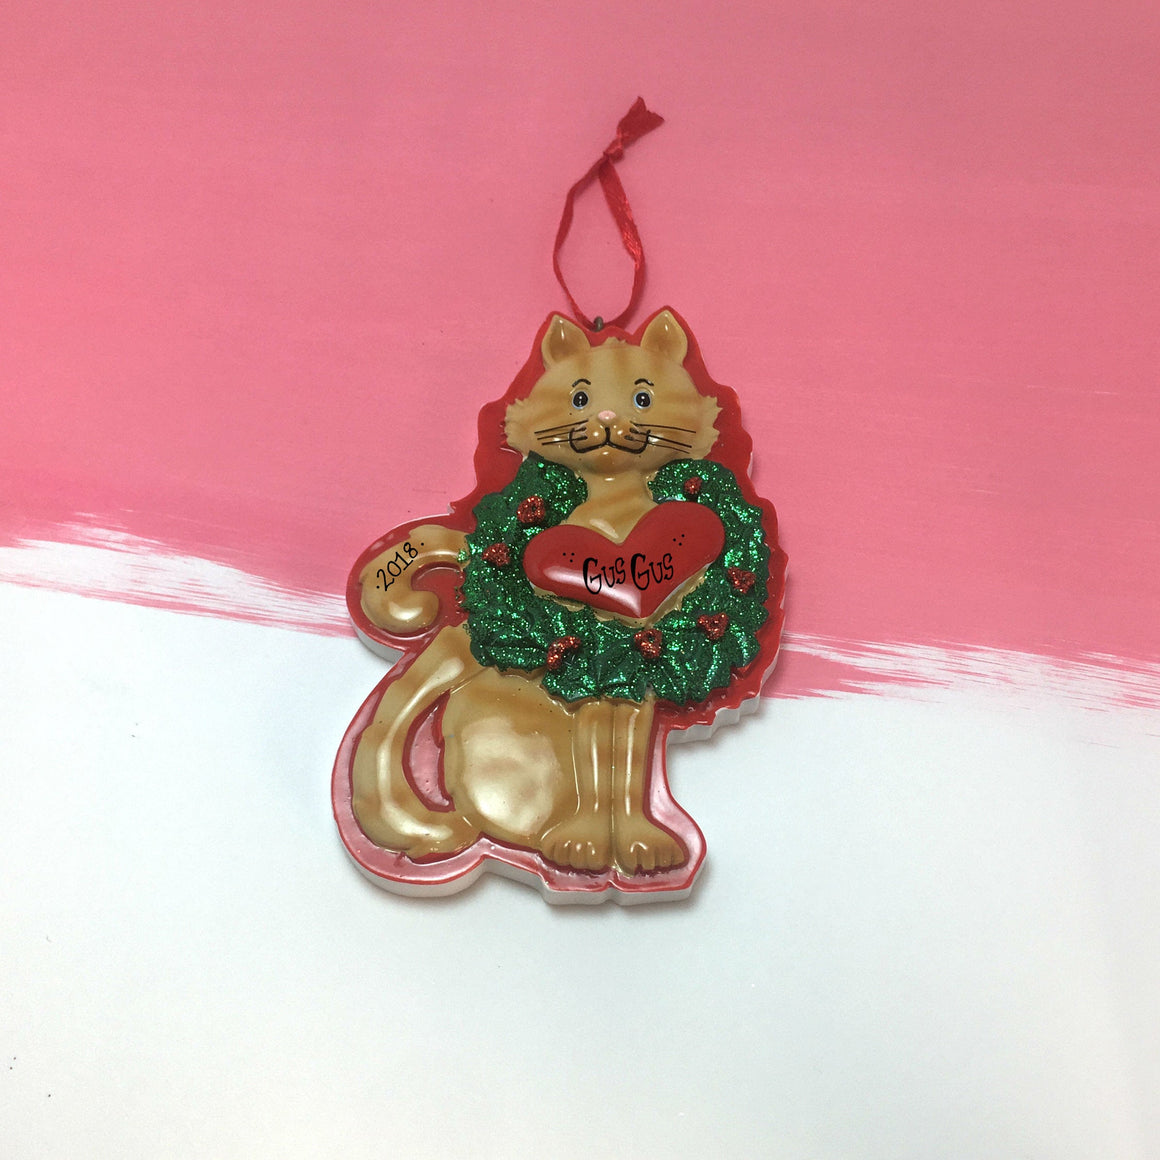 Orange Tabby Cat with Wreath and Heart Personalized Christmas Ornament / Kitten Christmas Ornament / Pet Christmas Ornament